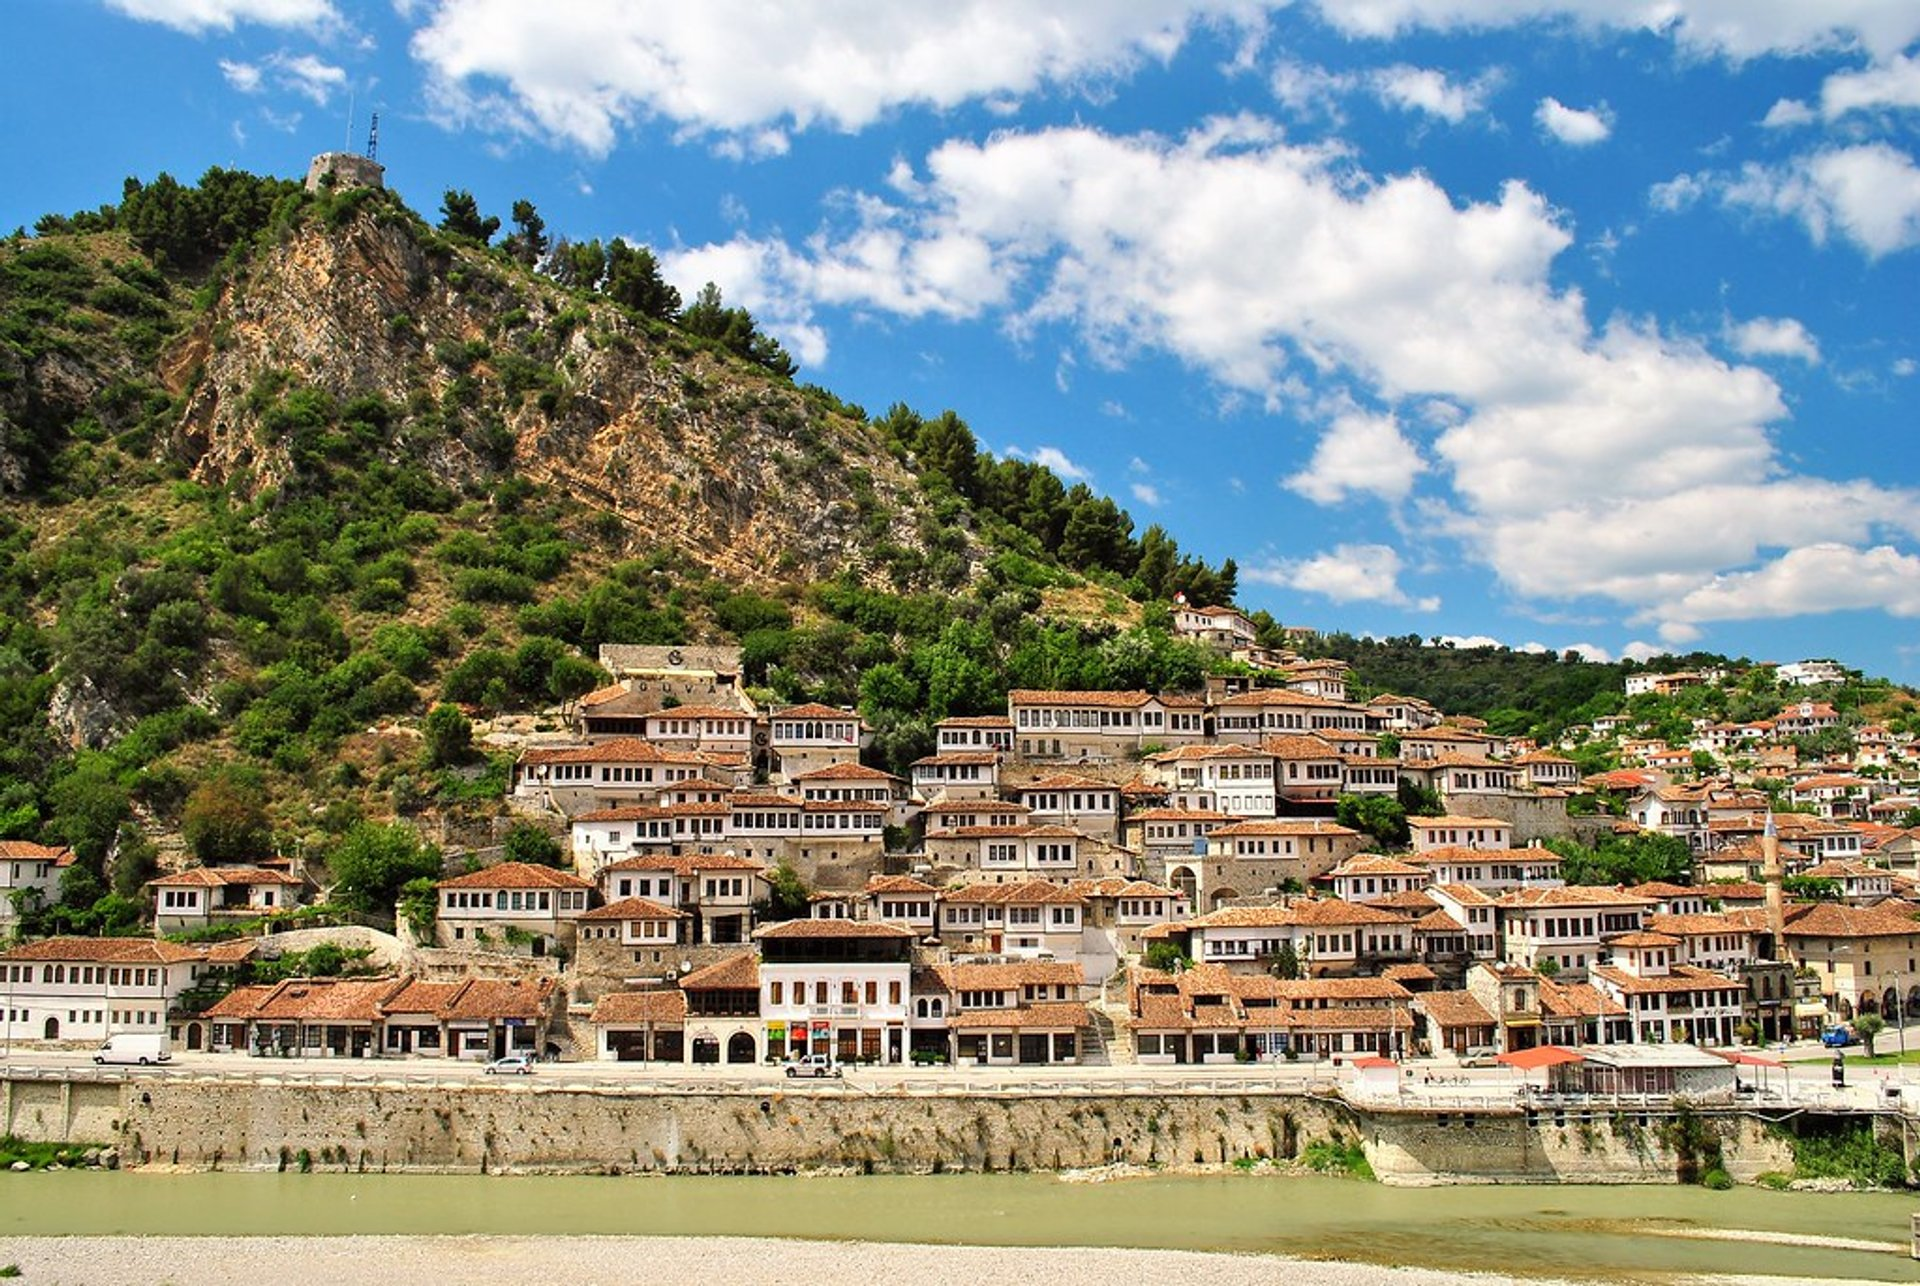 Berat in Albania 2019 - Best Time